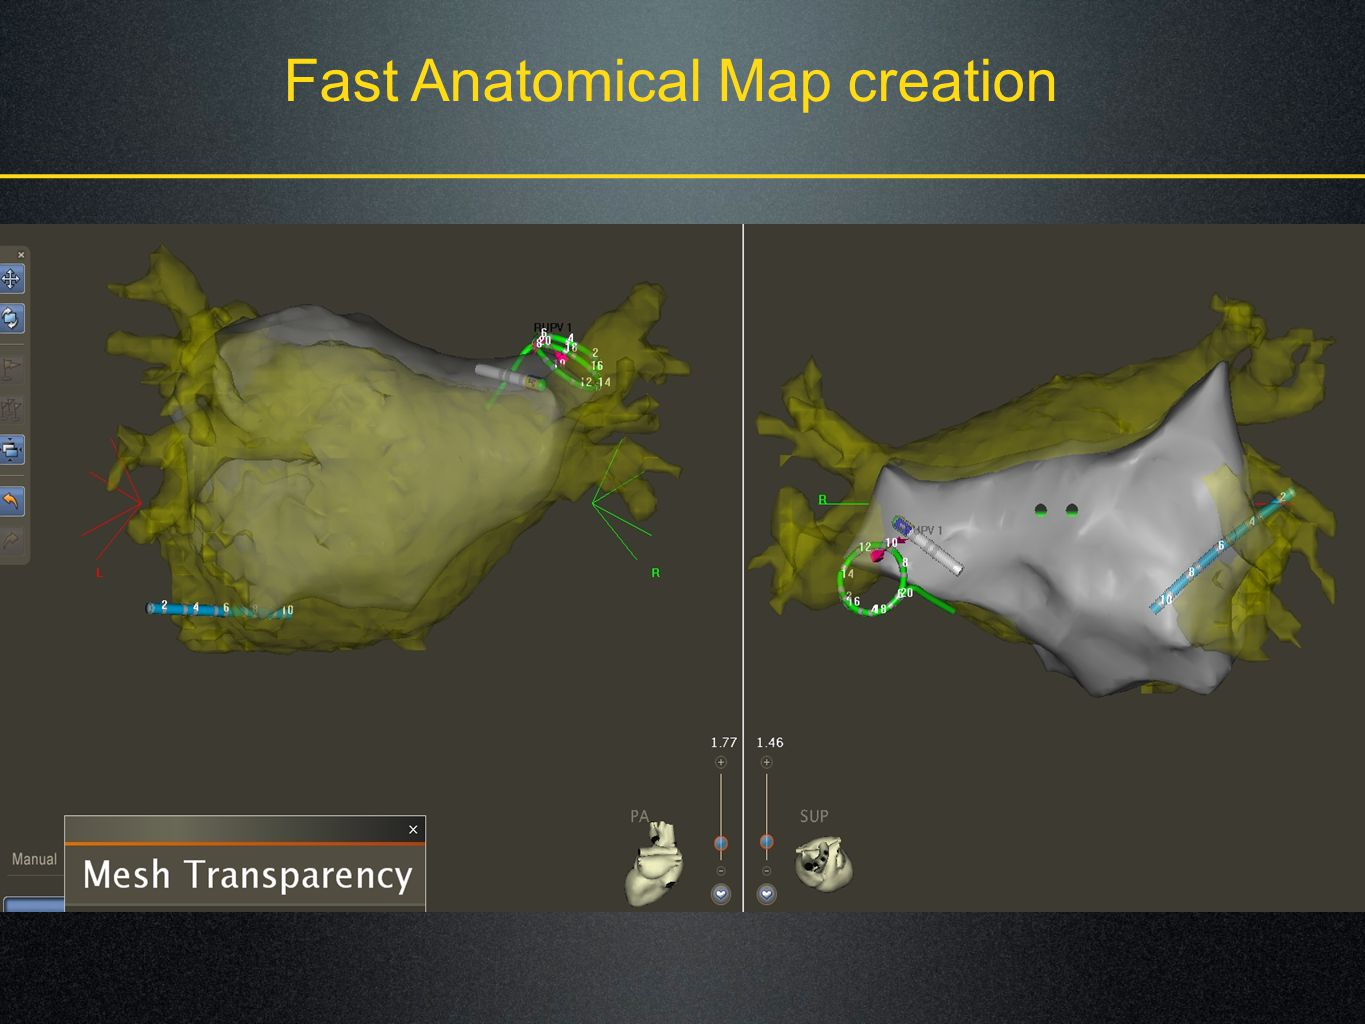 Fast Anatomical Map creation